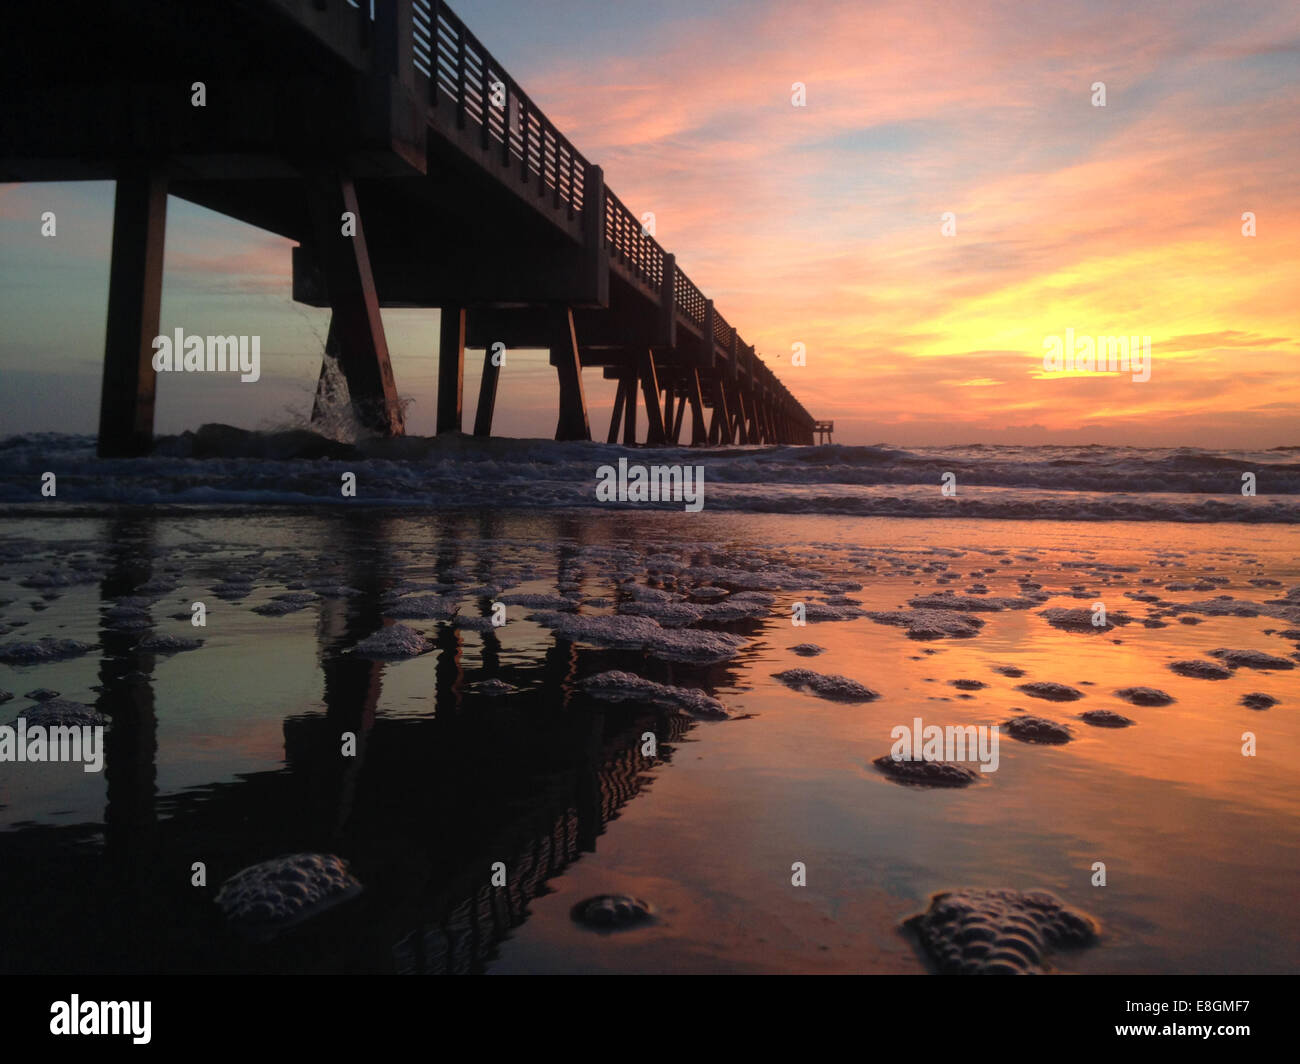 USA, Florida, Jacksonville Beach, Sunrise over pier - Stock Image